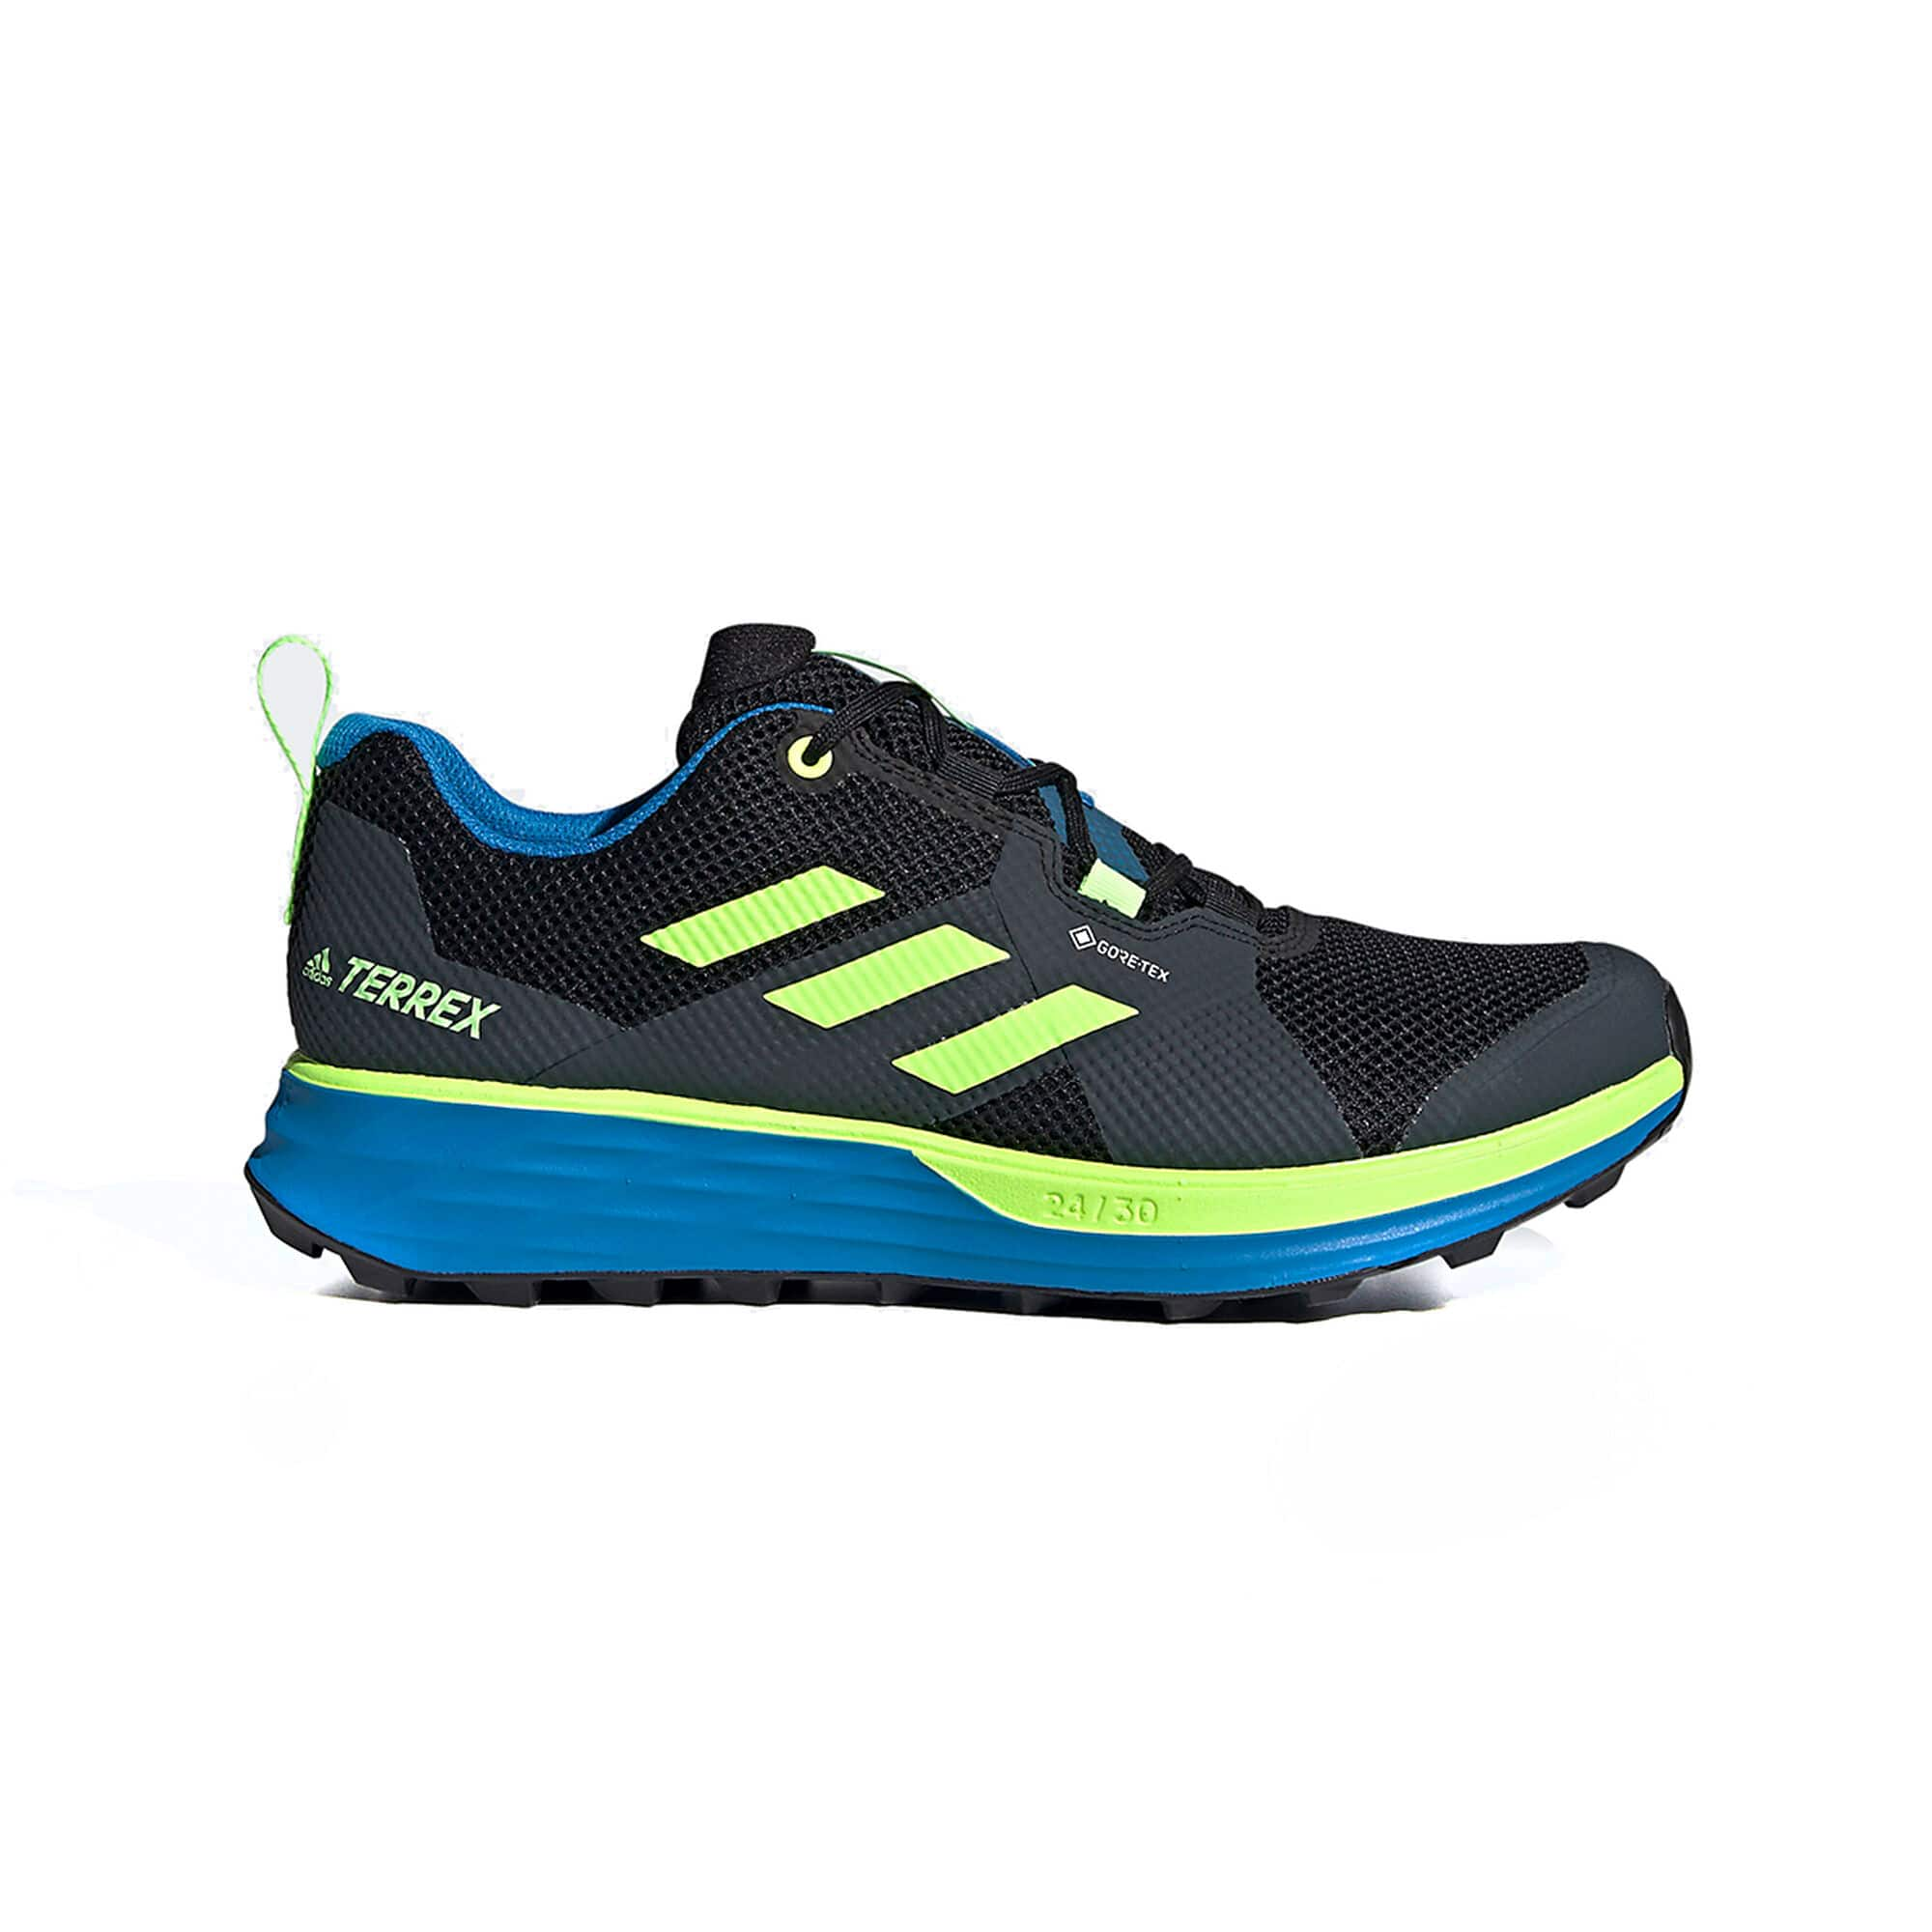 adidas Men's Terrex Two Gore-Tex Trail Running Shoes $50 + Free S/H